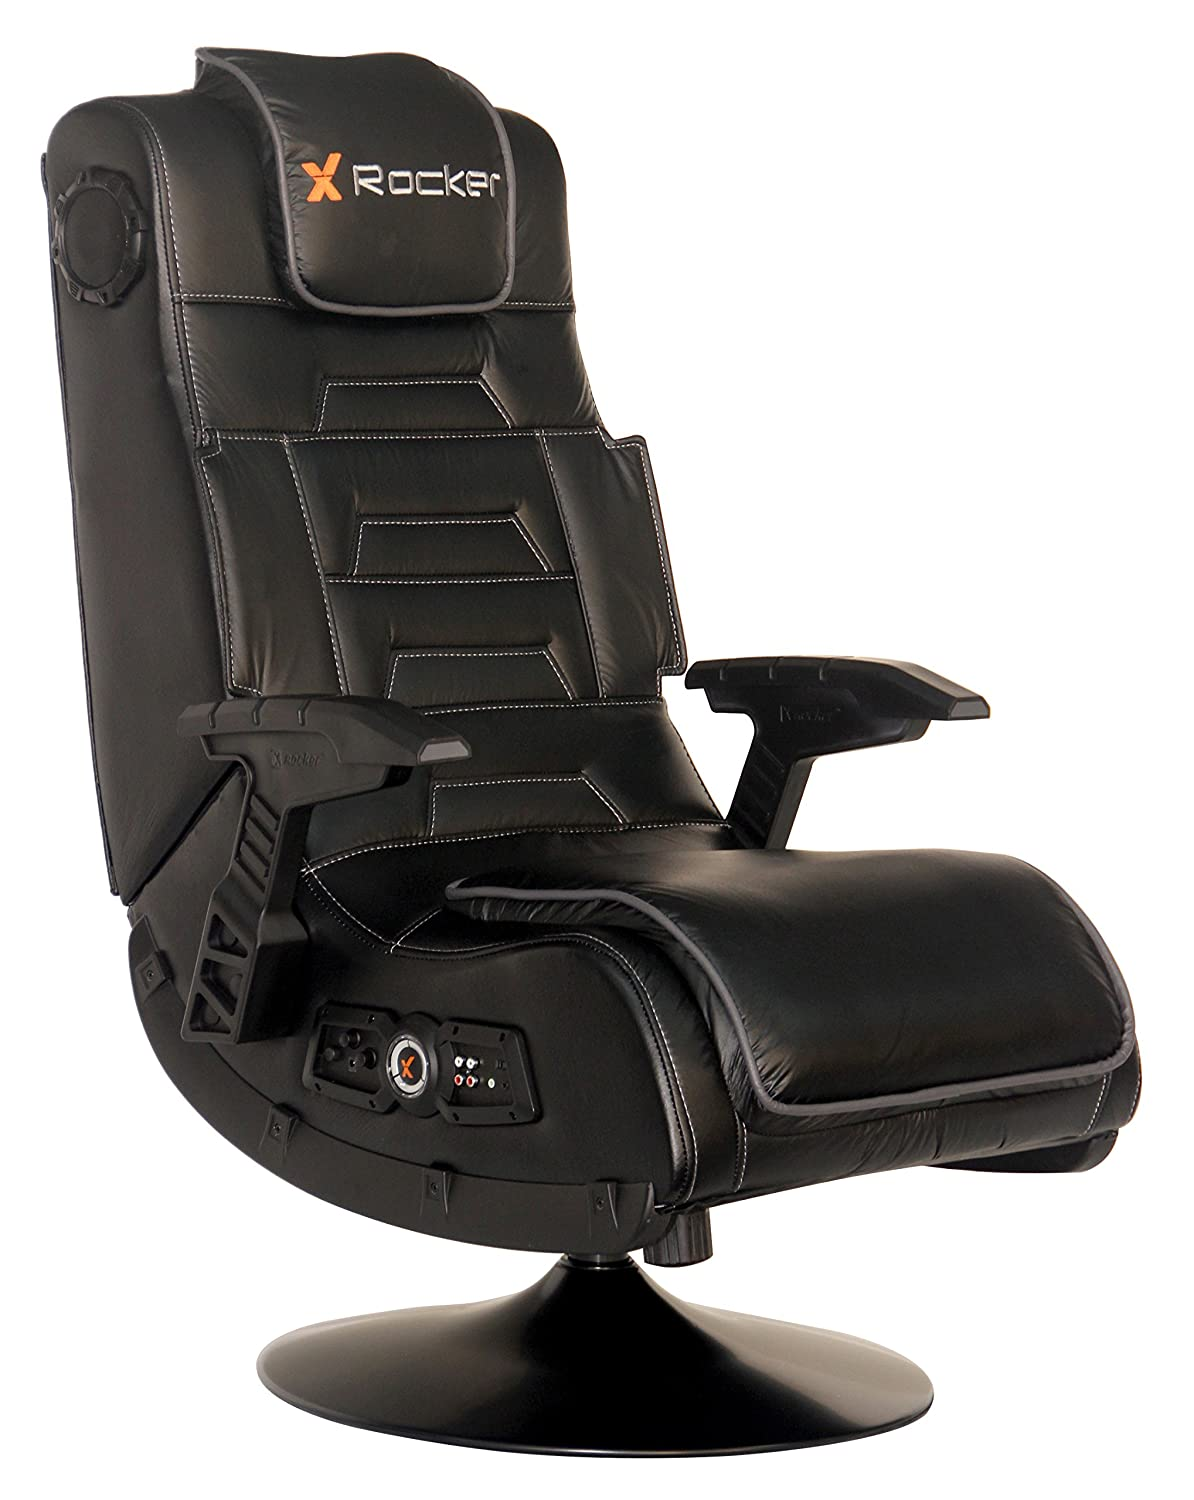 Awe Inspiring Amazon Com X Rocker Pro Series 2 1 Vibrating Black Leather Inzonedesignstudio Interior Chair Design Inzonedesignstudiocom